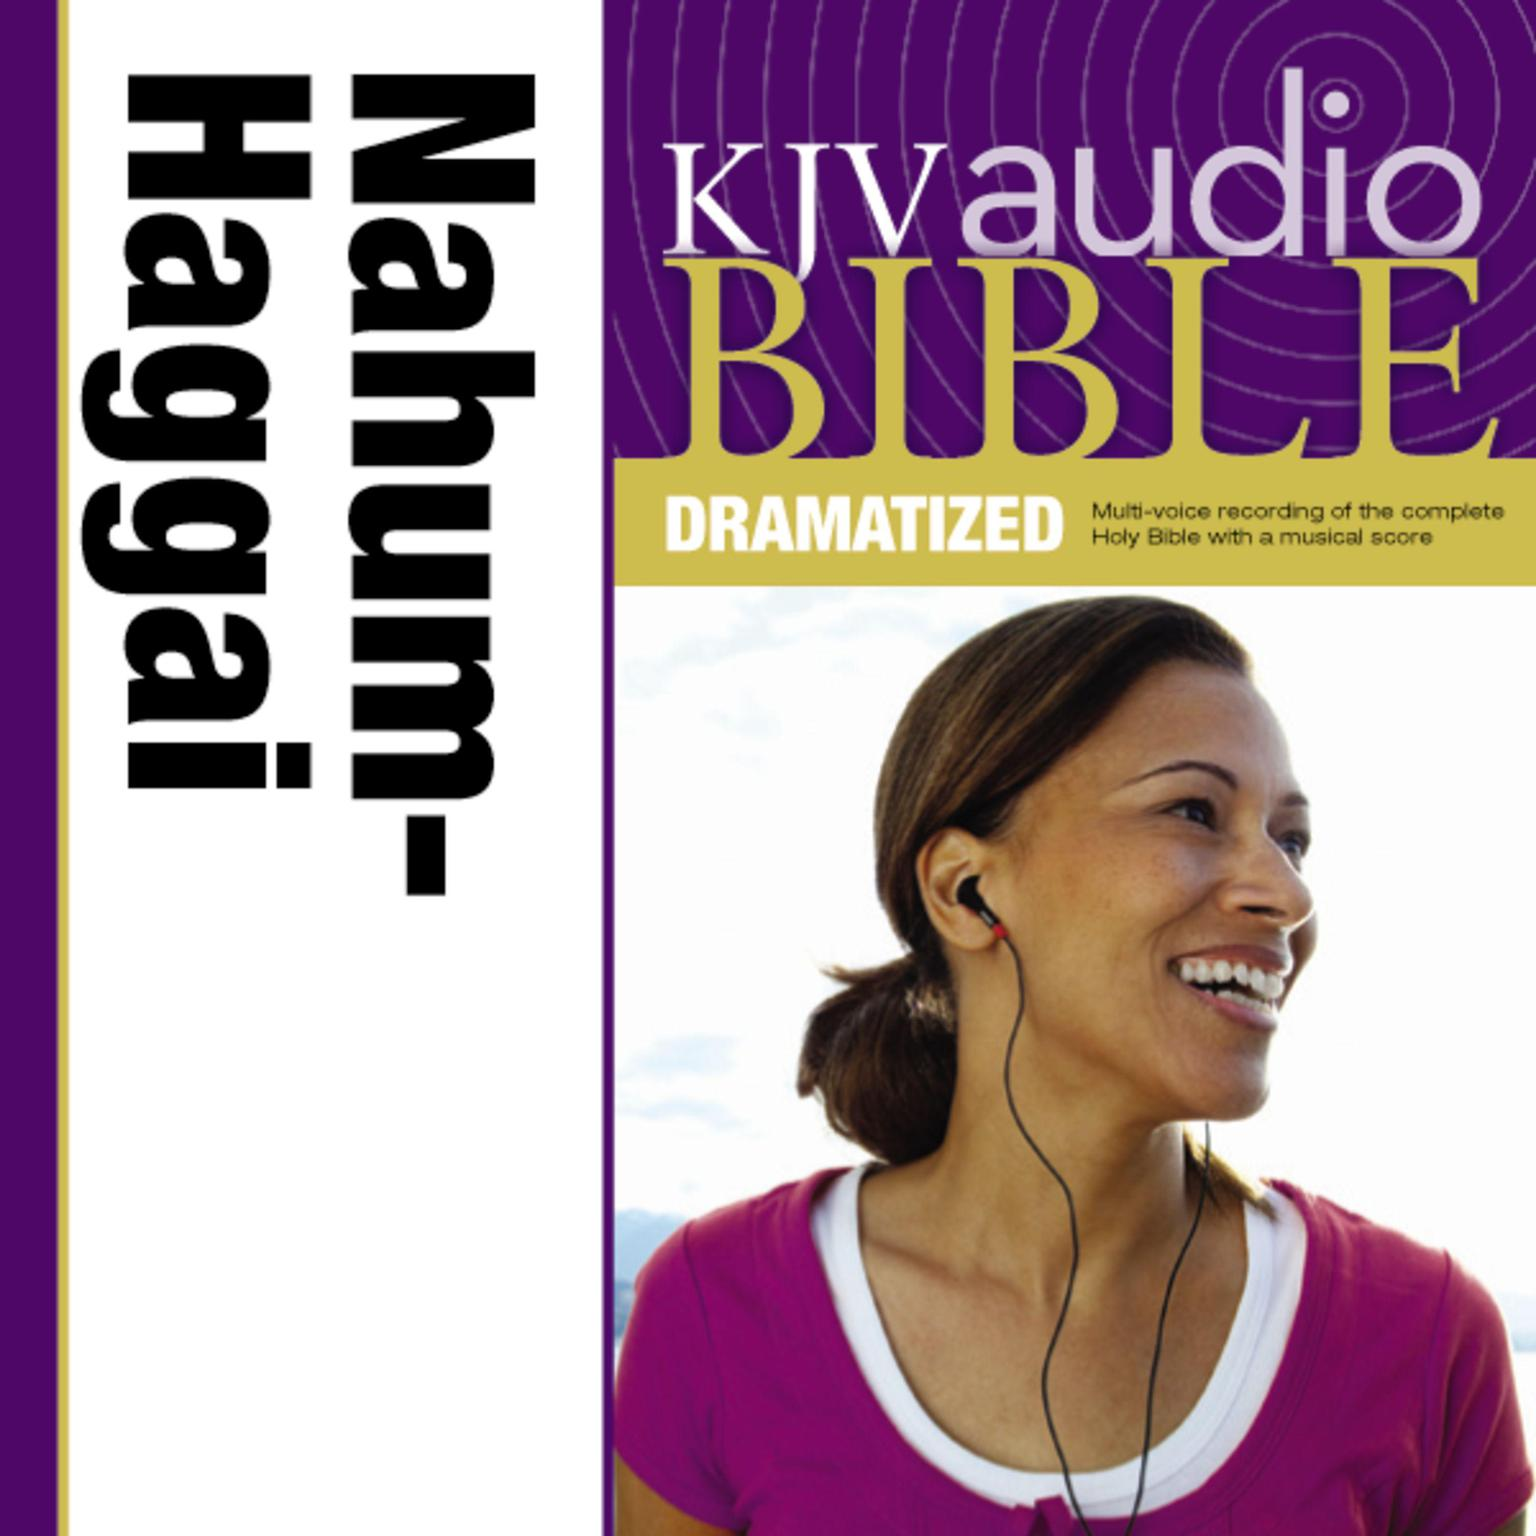 Printable KJV, Audio Bible, Dramatized: Nahum, Habakkuk, Zephaniah, and Haggai, Audio Download Audiobook Cover Art